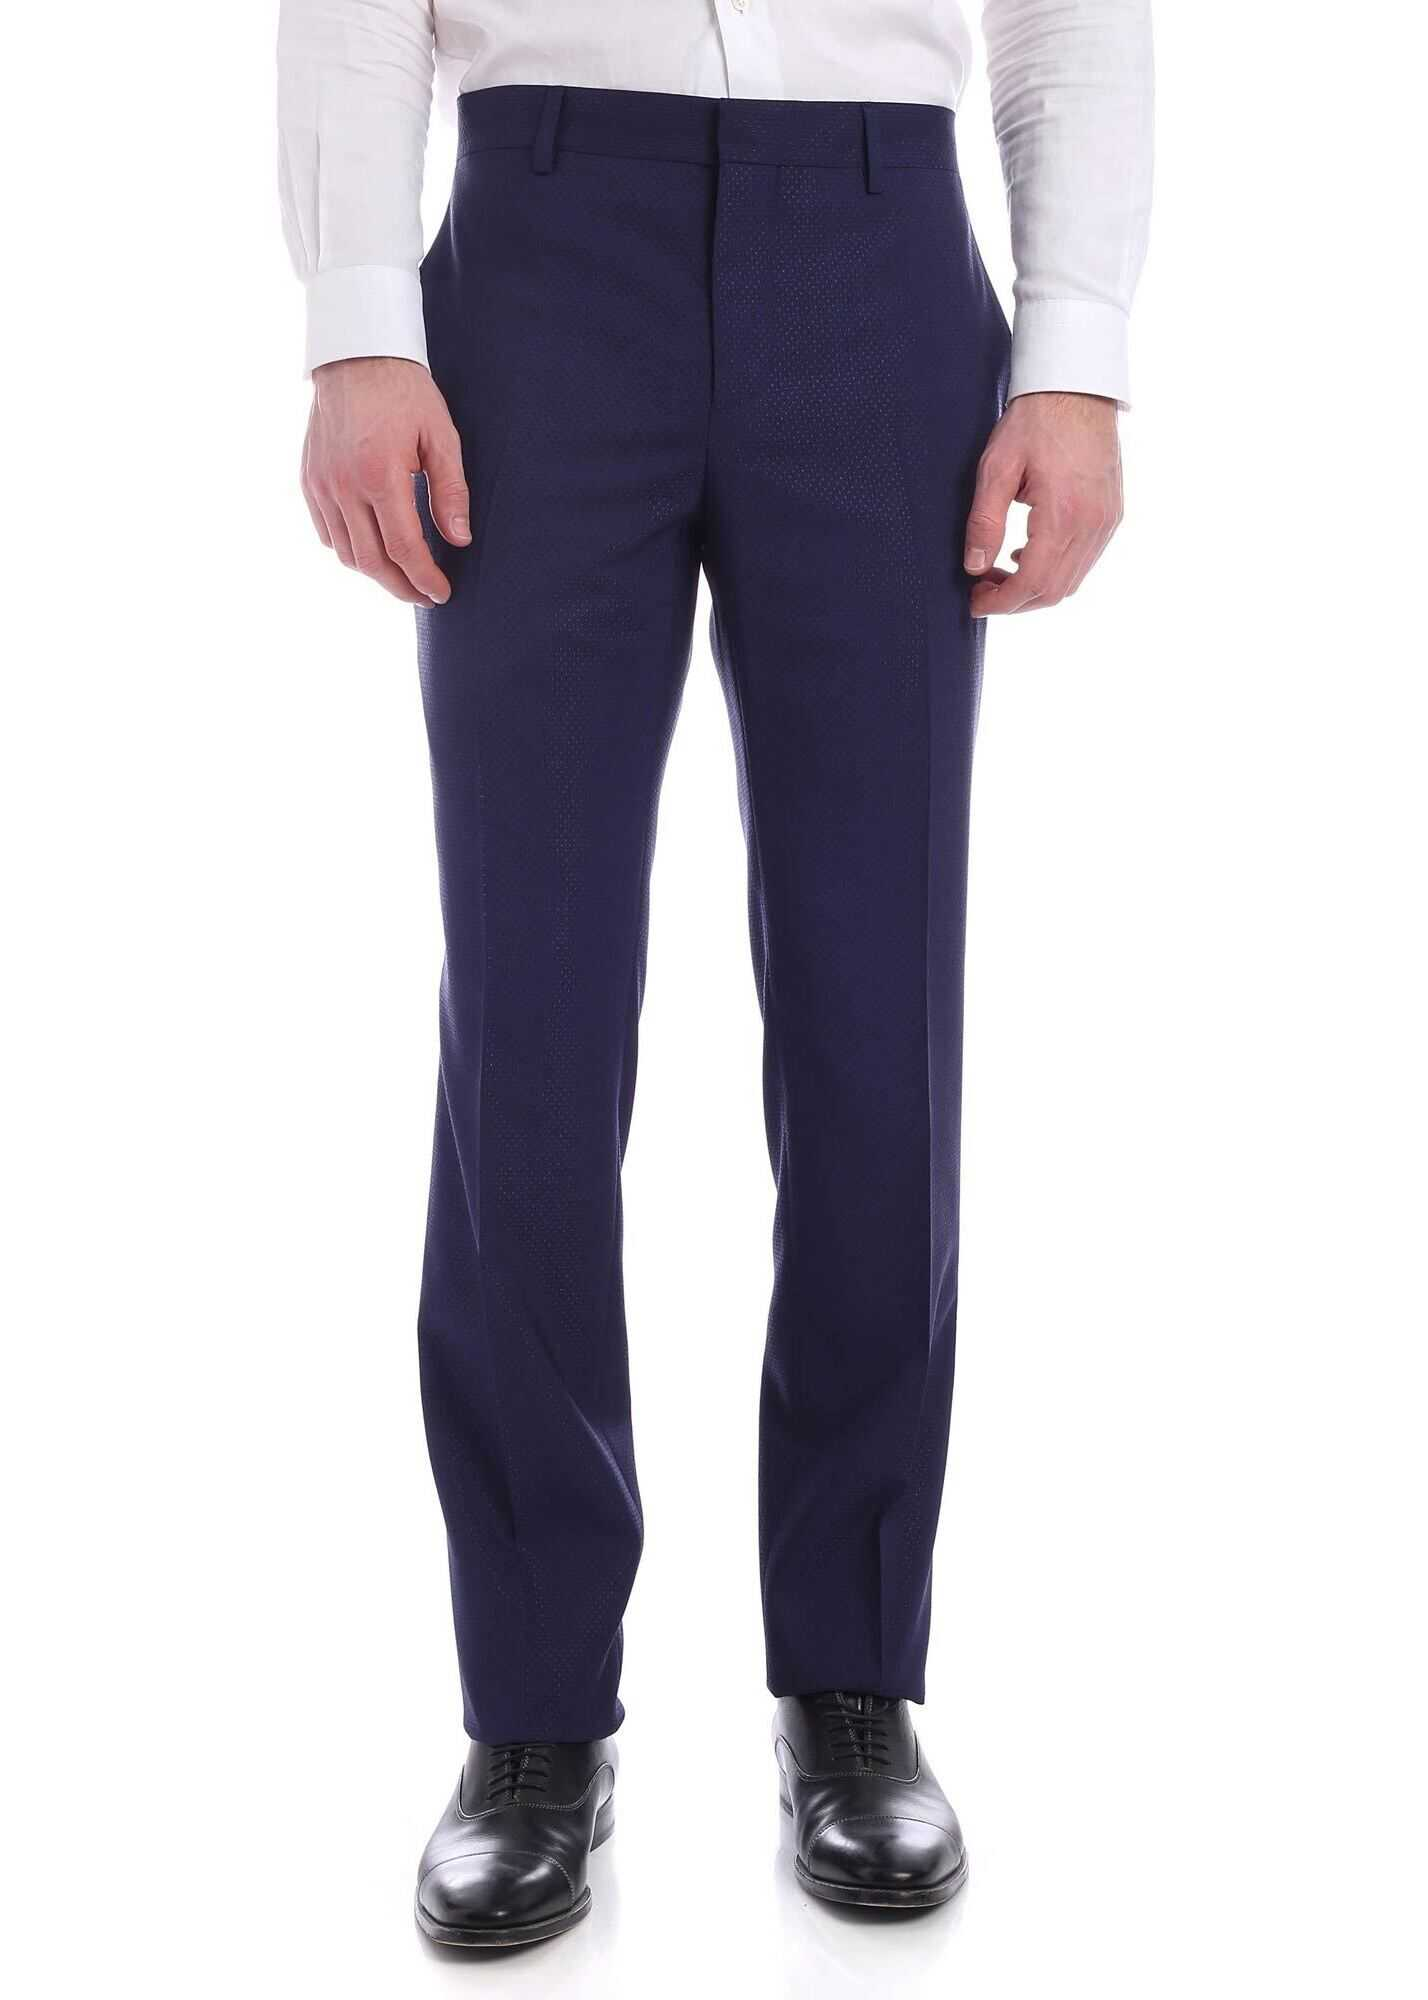 Moschino Tone-On-Tone Micro Pattern Pants In Blue Blue imagine